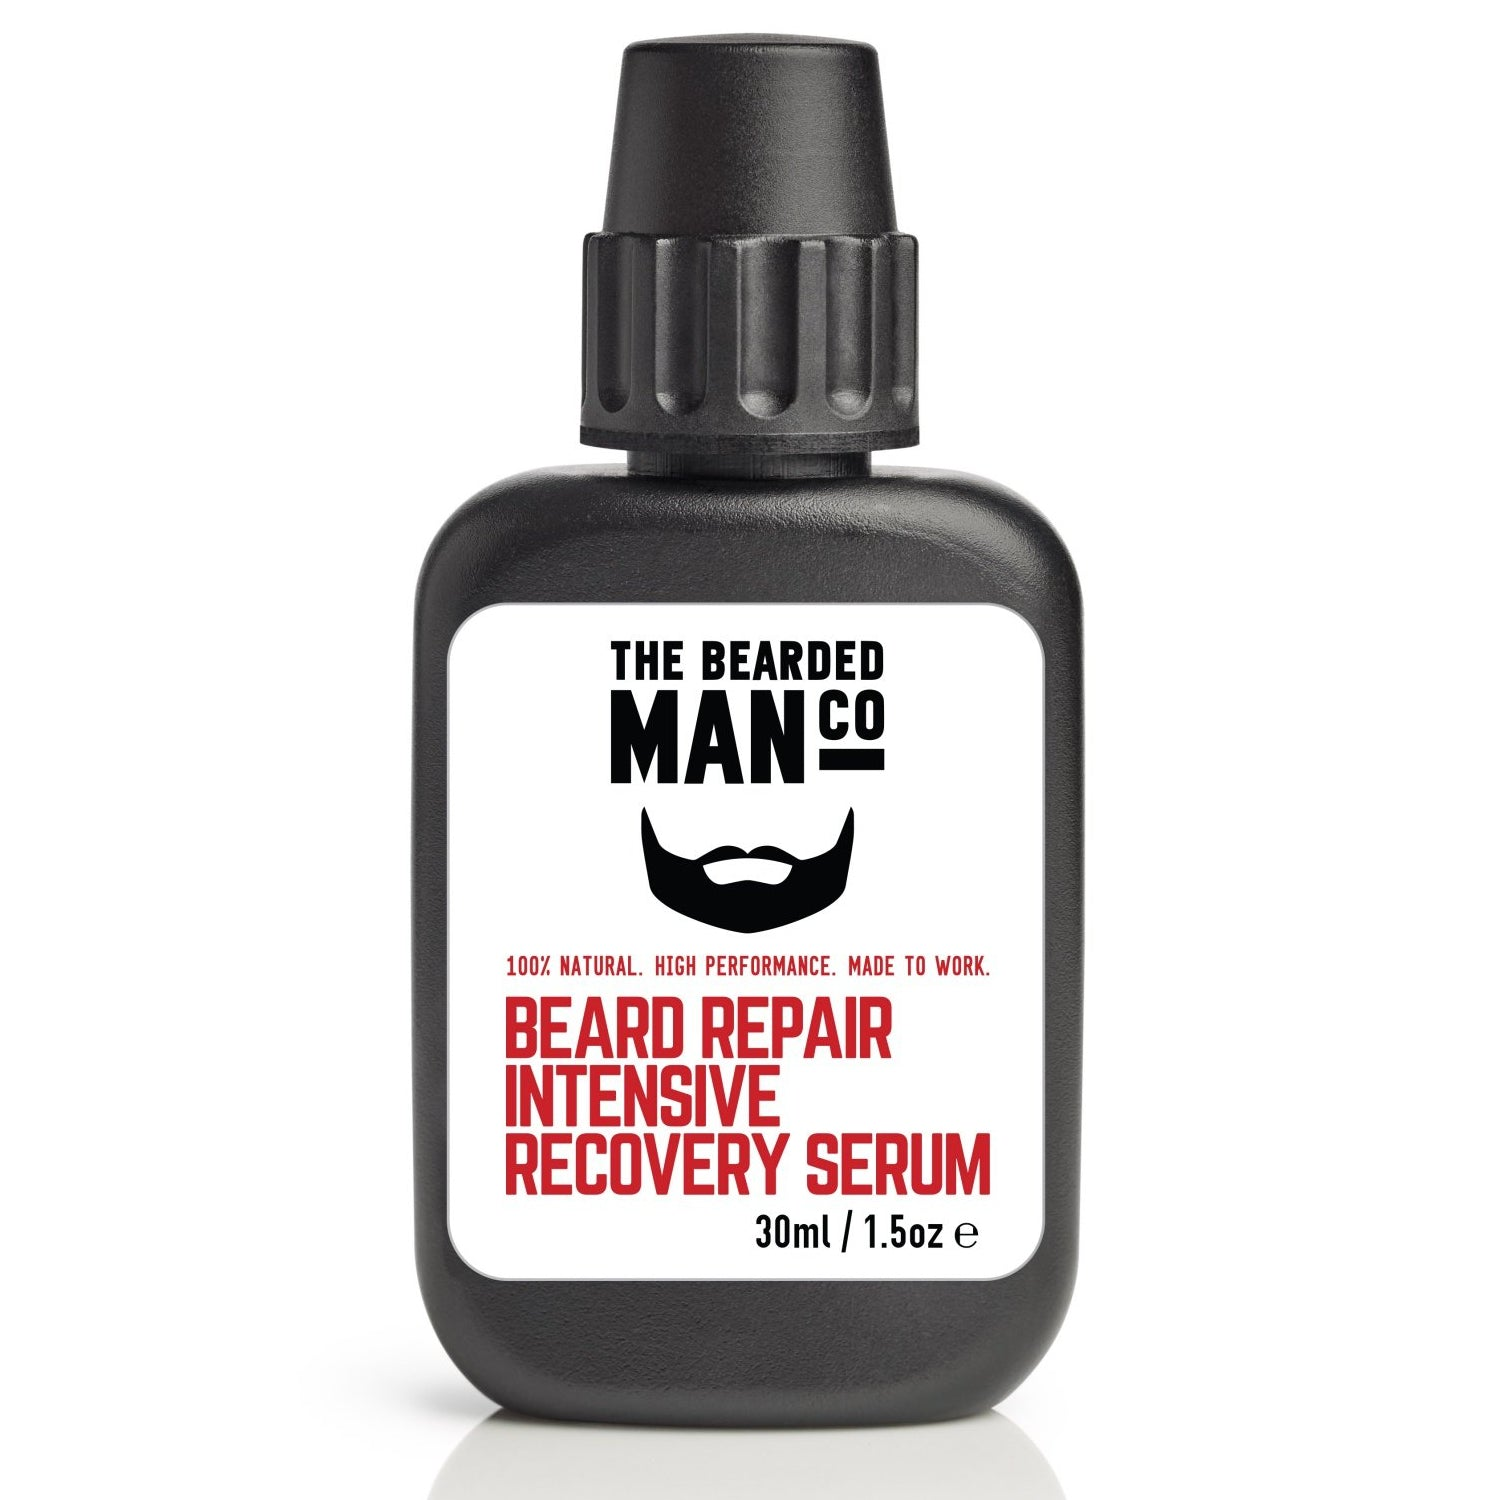 Beard Repair Intensive Recovery Serum